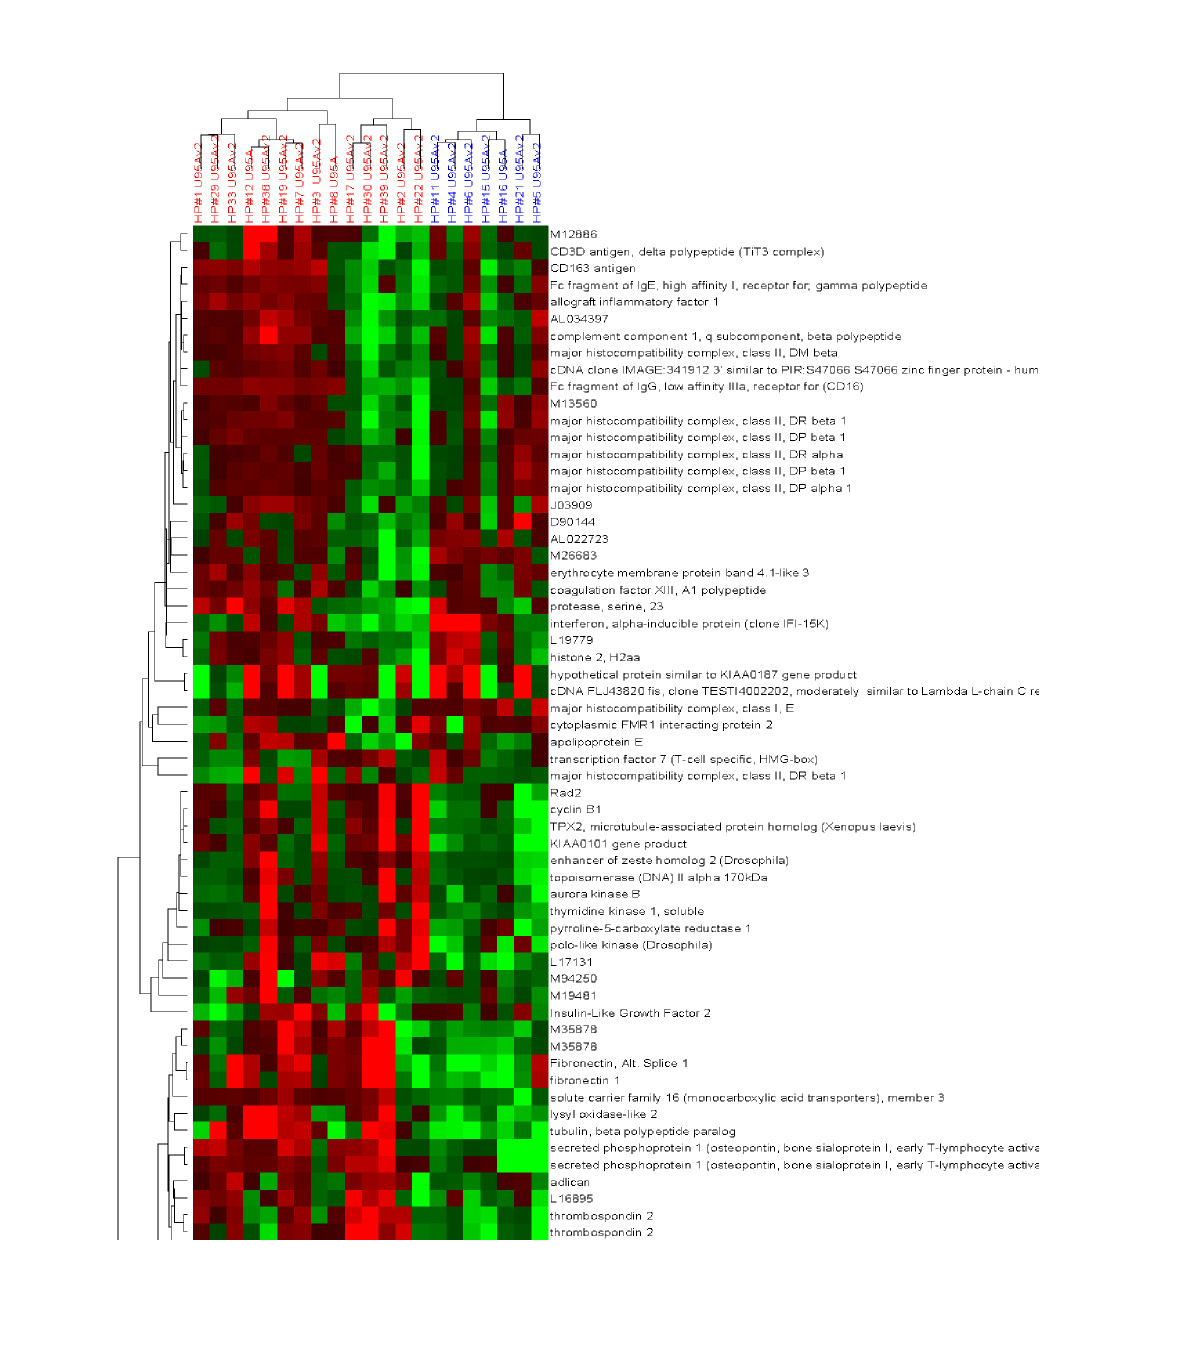 https://static-content.springer.com/image/art%3A10.1186%2F1479-5876-2-35/MediaObjects/12967_2004_Article_49_Fig6_HTML.jpg